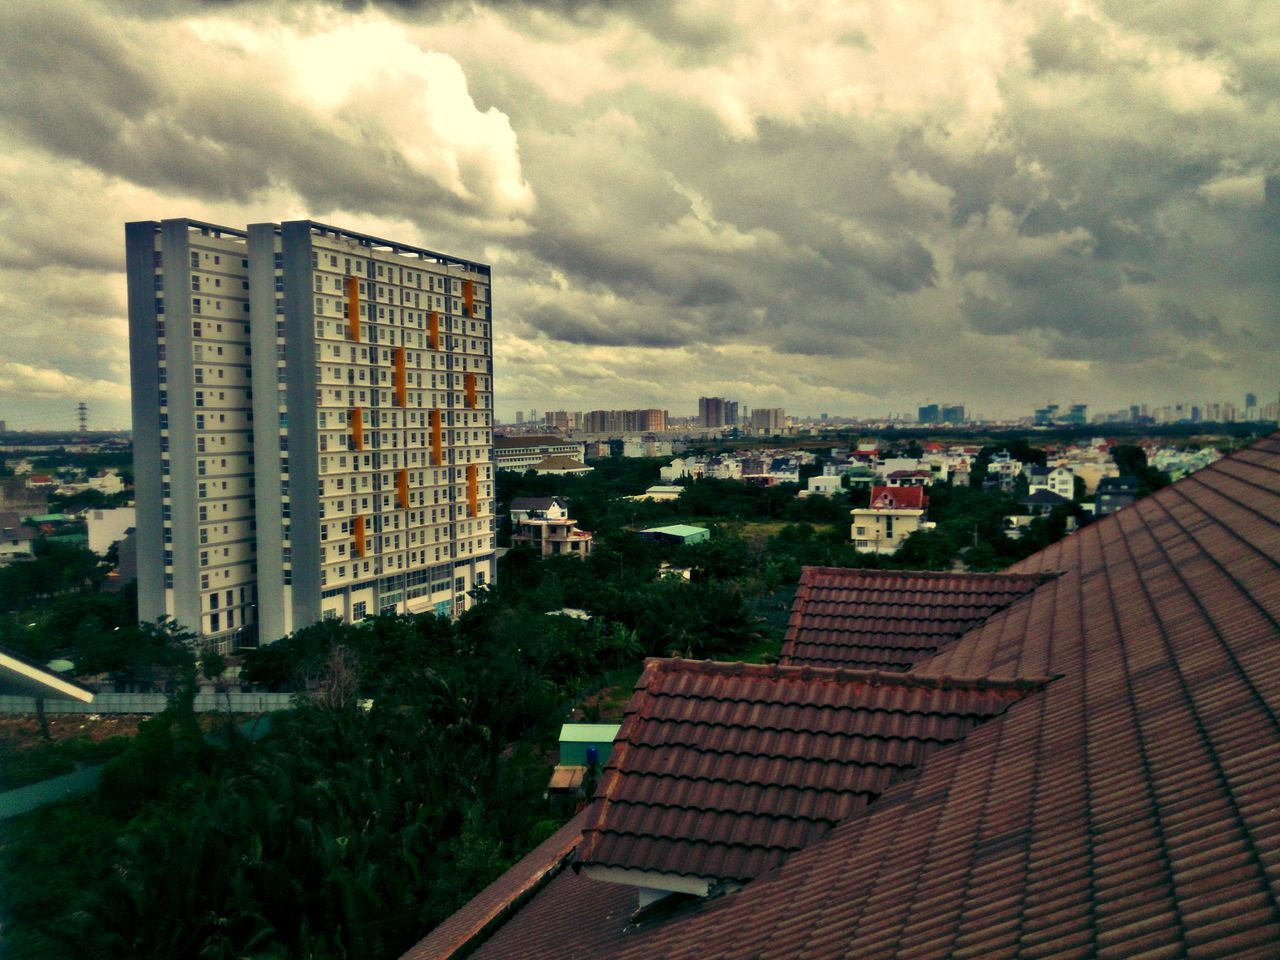 architecture, building exterior, built structure, sky, roof, cityscape, cloud - sky, city, no people, day, outdoors, tiled roof, residential